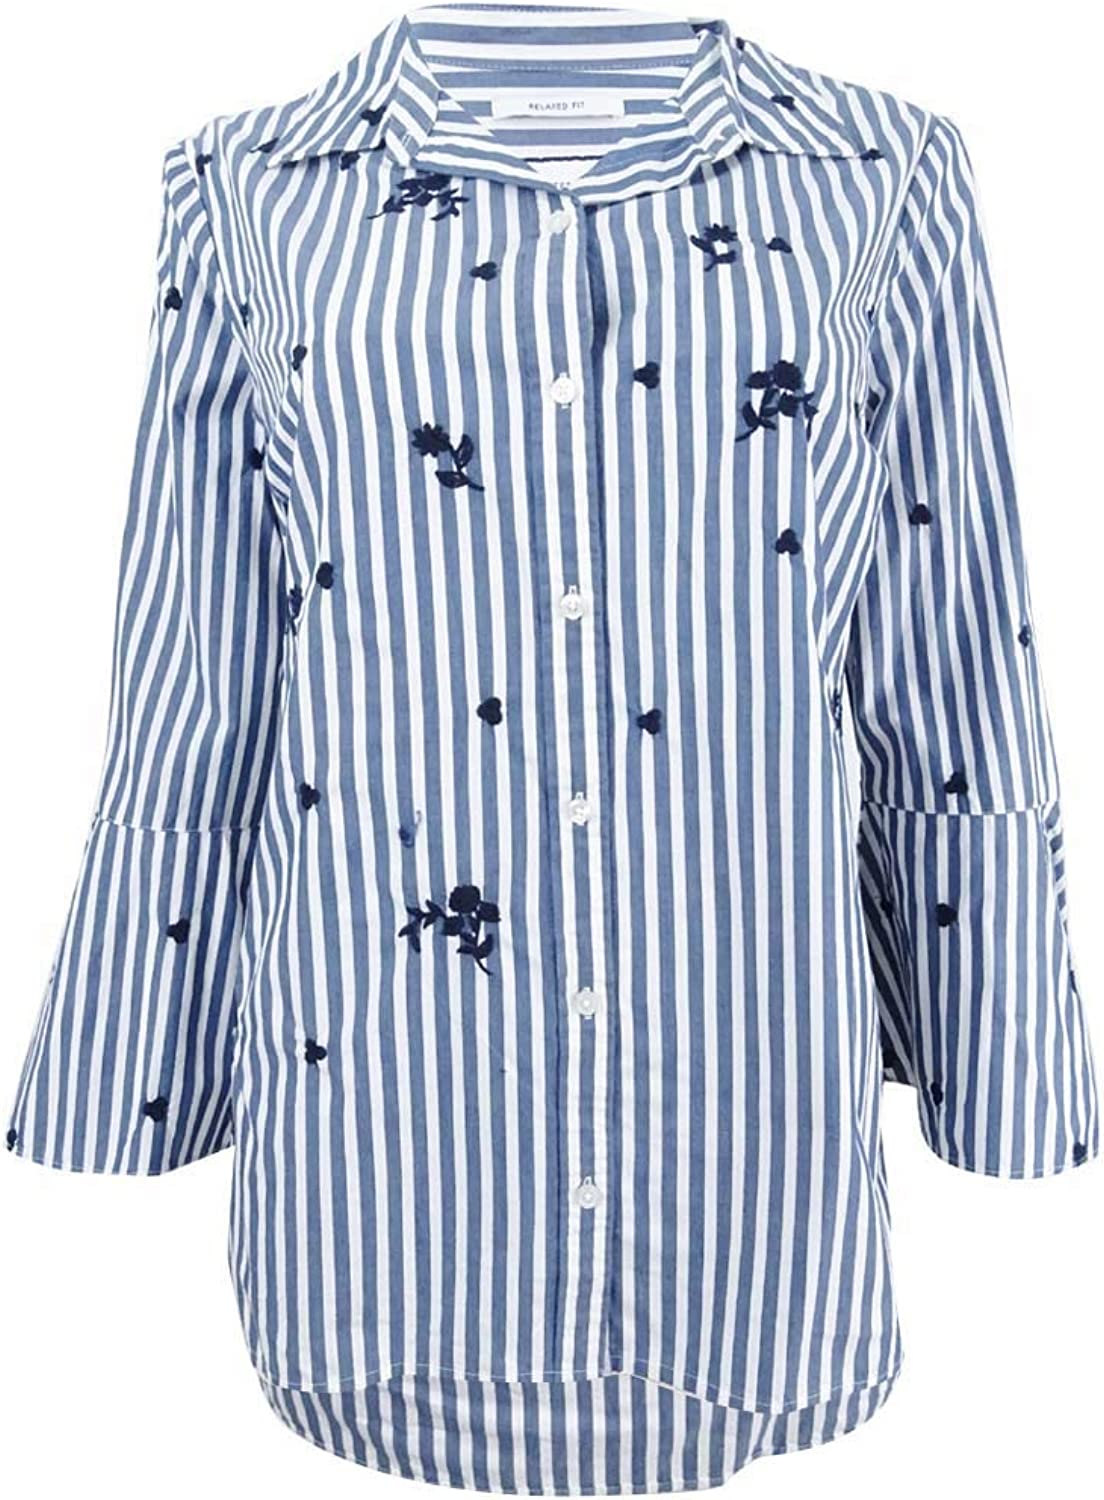 Charter Club Cotton Embroidered Blouse (Classic bluee Combo)